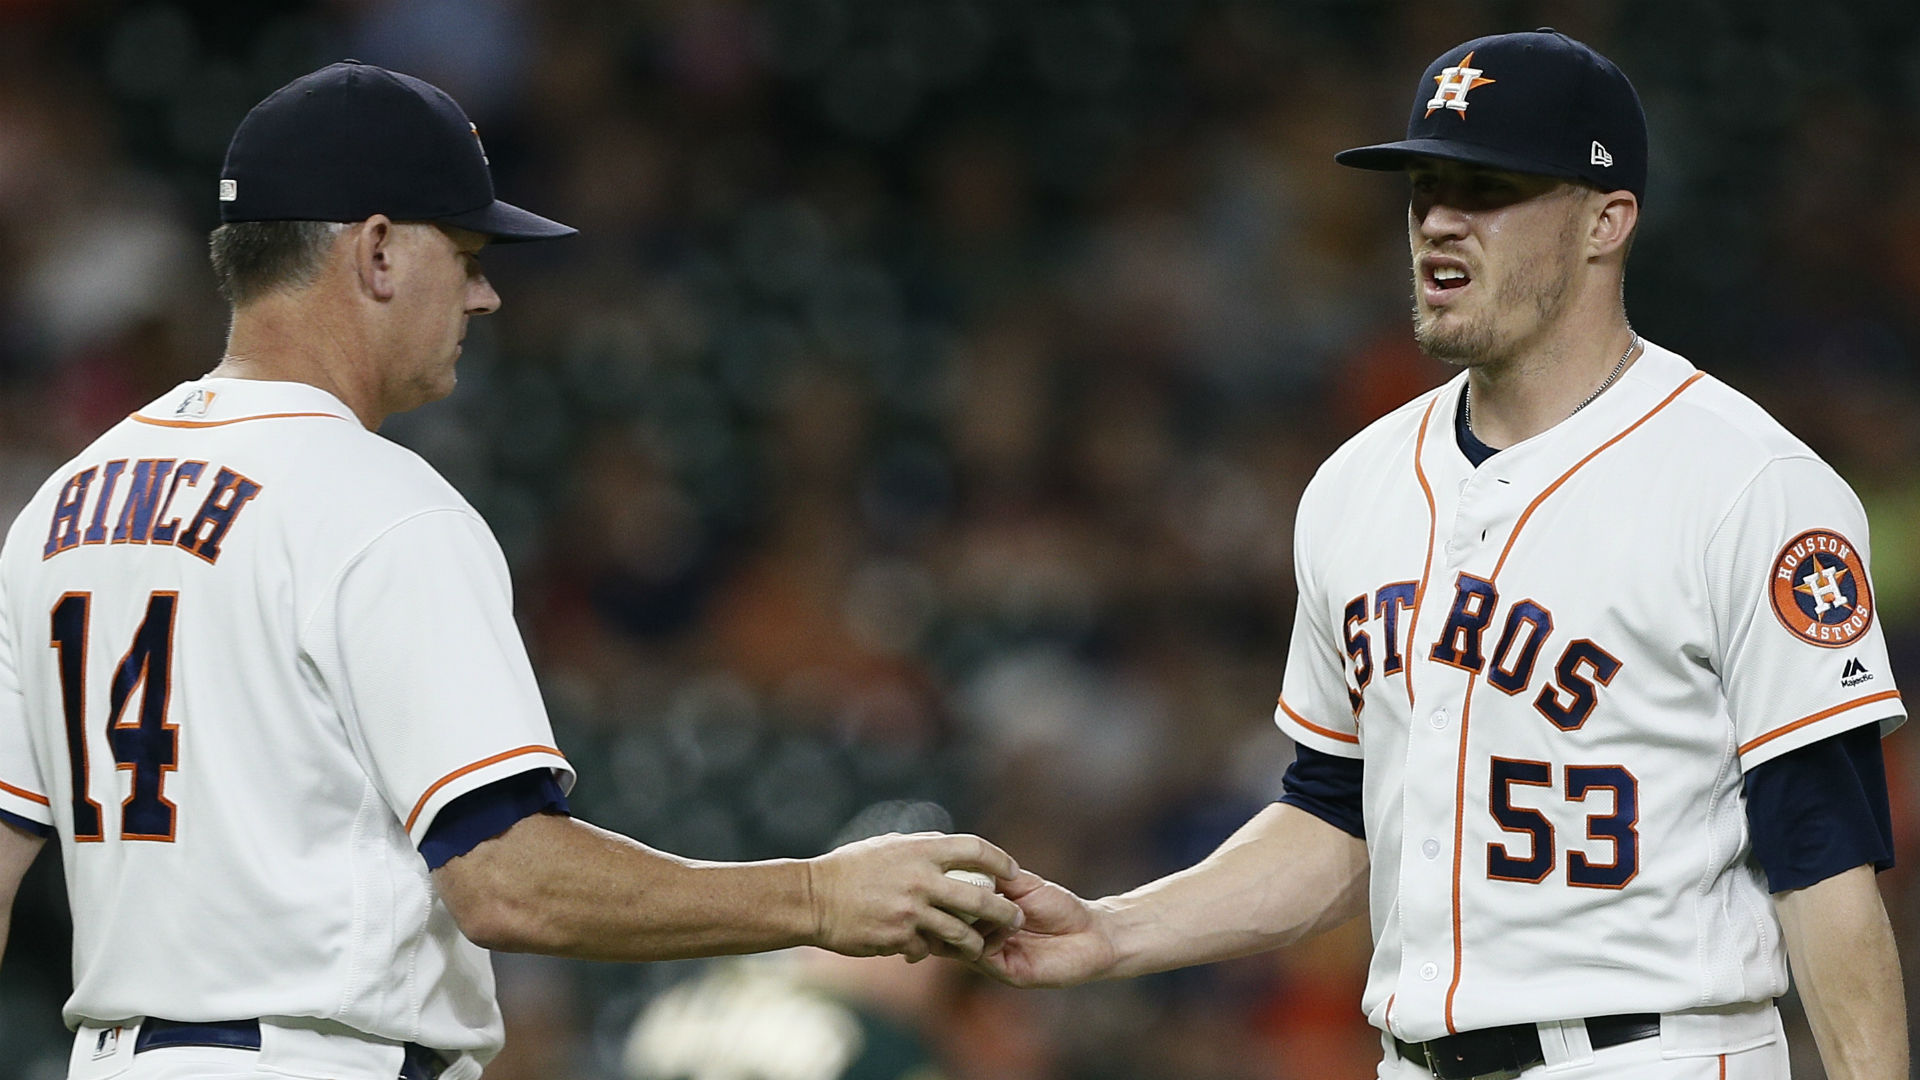 Astros' Ken Giles cursed out manager for pulling him from game